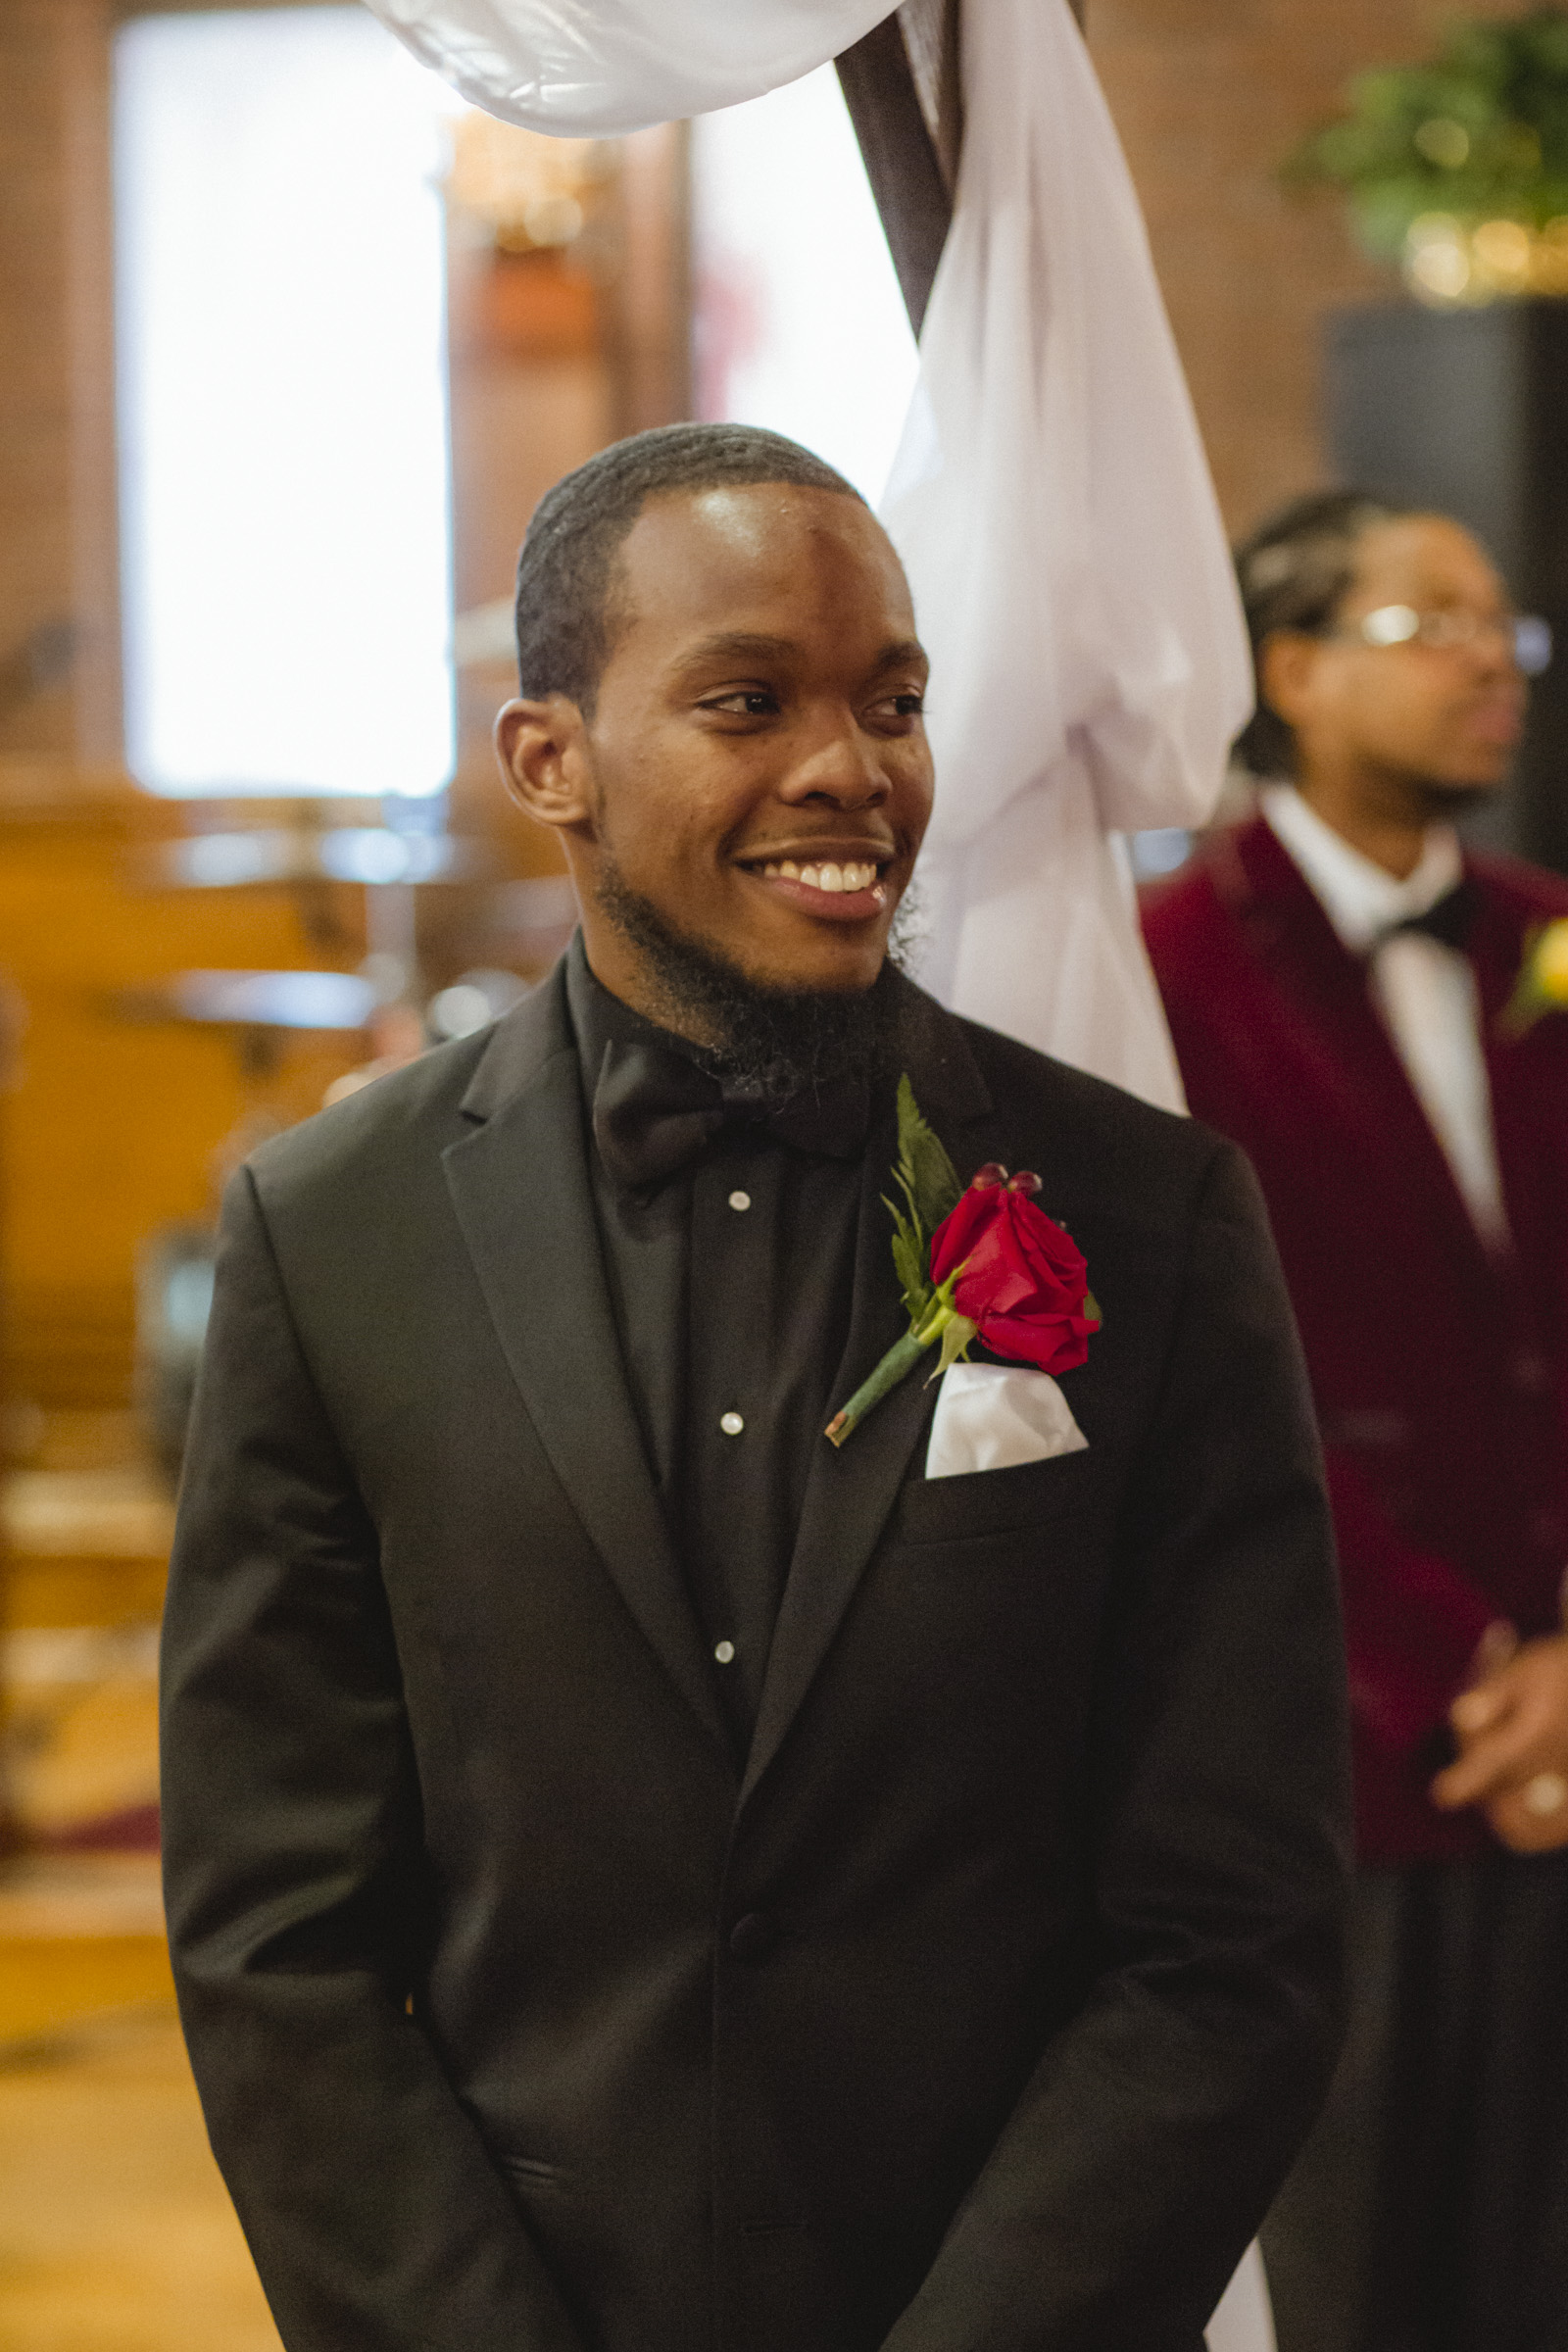 Amy Sims Photography | Groom tears up seeing bride come down the aisle | Greater St. Stephen United Church of God | New York Wedding Photographer | Brooklyn Church Wedding